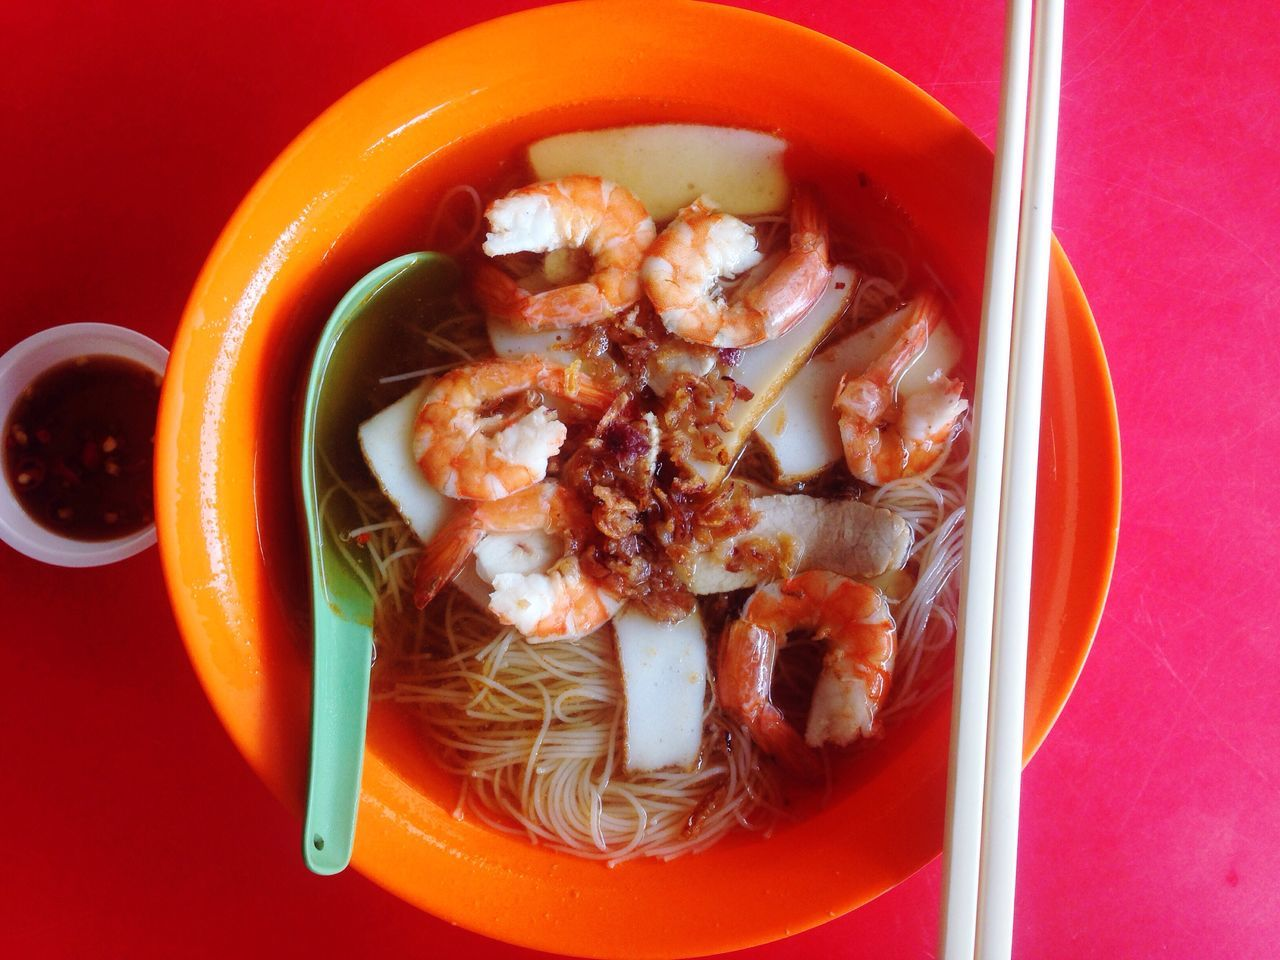 Food And Drink Food Freshness Ready-to-eat Indoors  Plate No People Healthy Eating Close-up Asian Food Meal Soup Thai Food Prawn Noodles